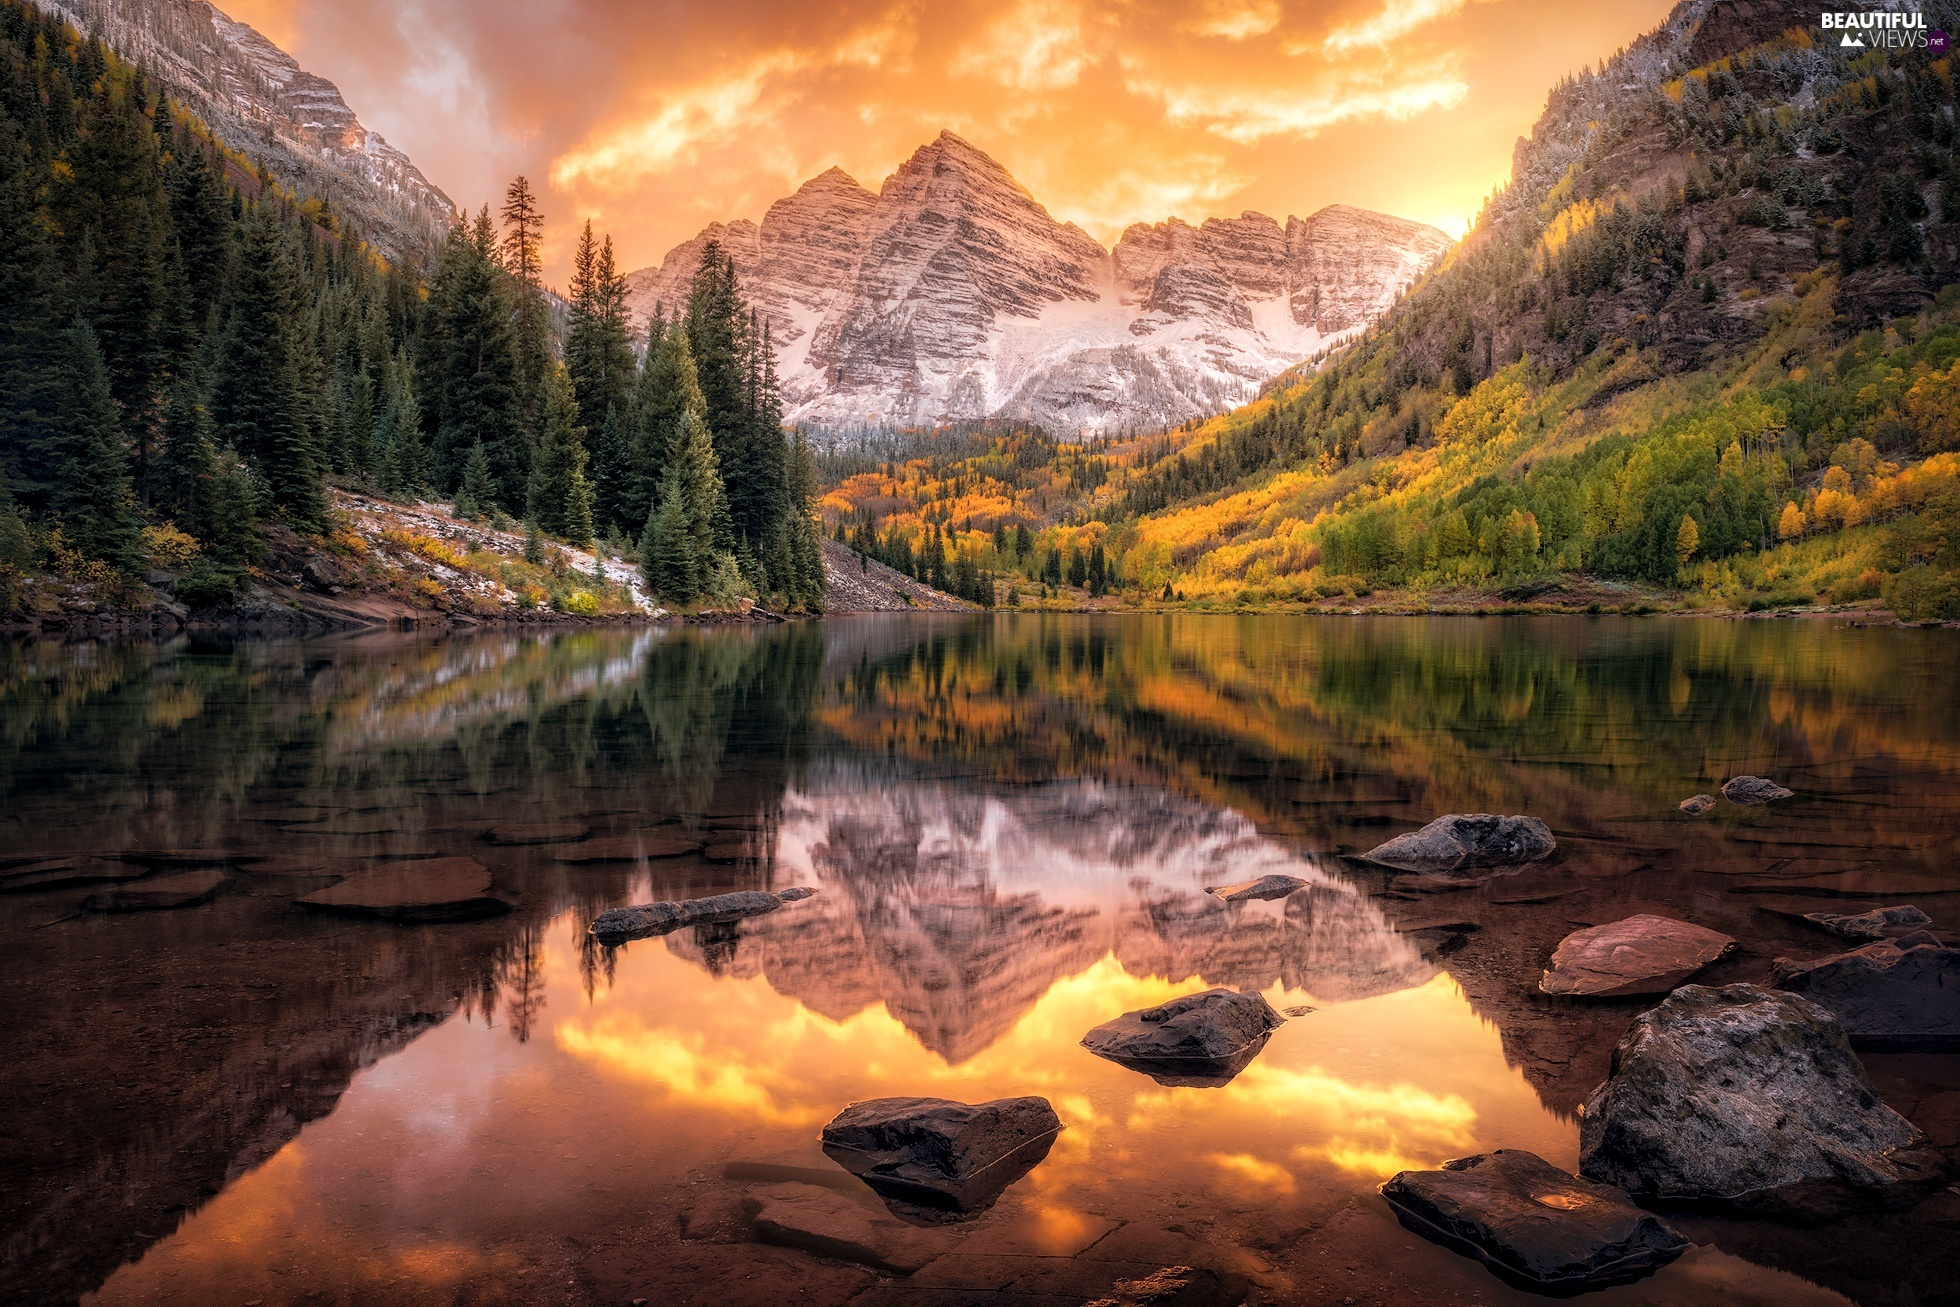 Maroon Bells Peaks, rocky mountains, Maroon Lake, State of Colorado, Stones, reflection, trees, viewes, The United States